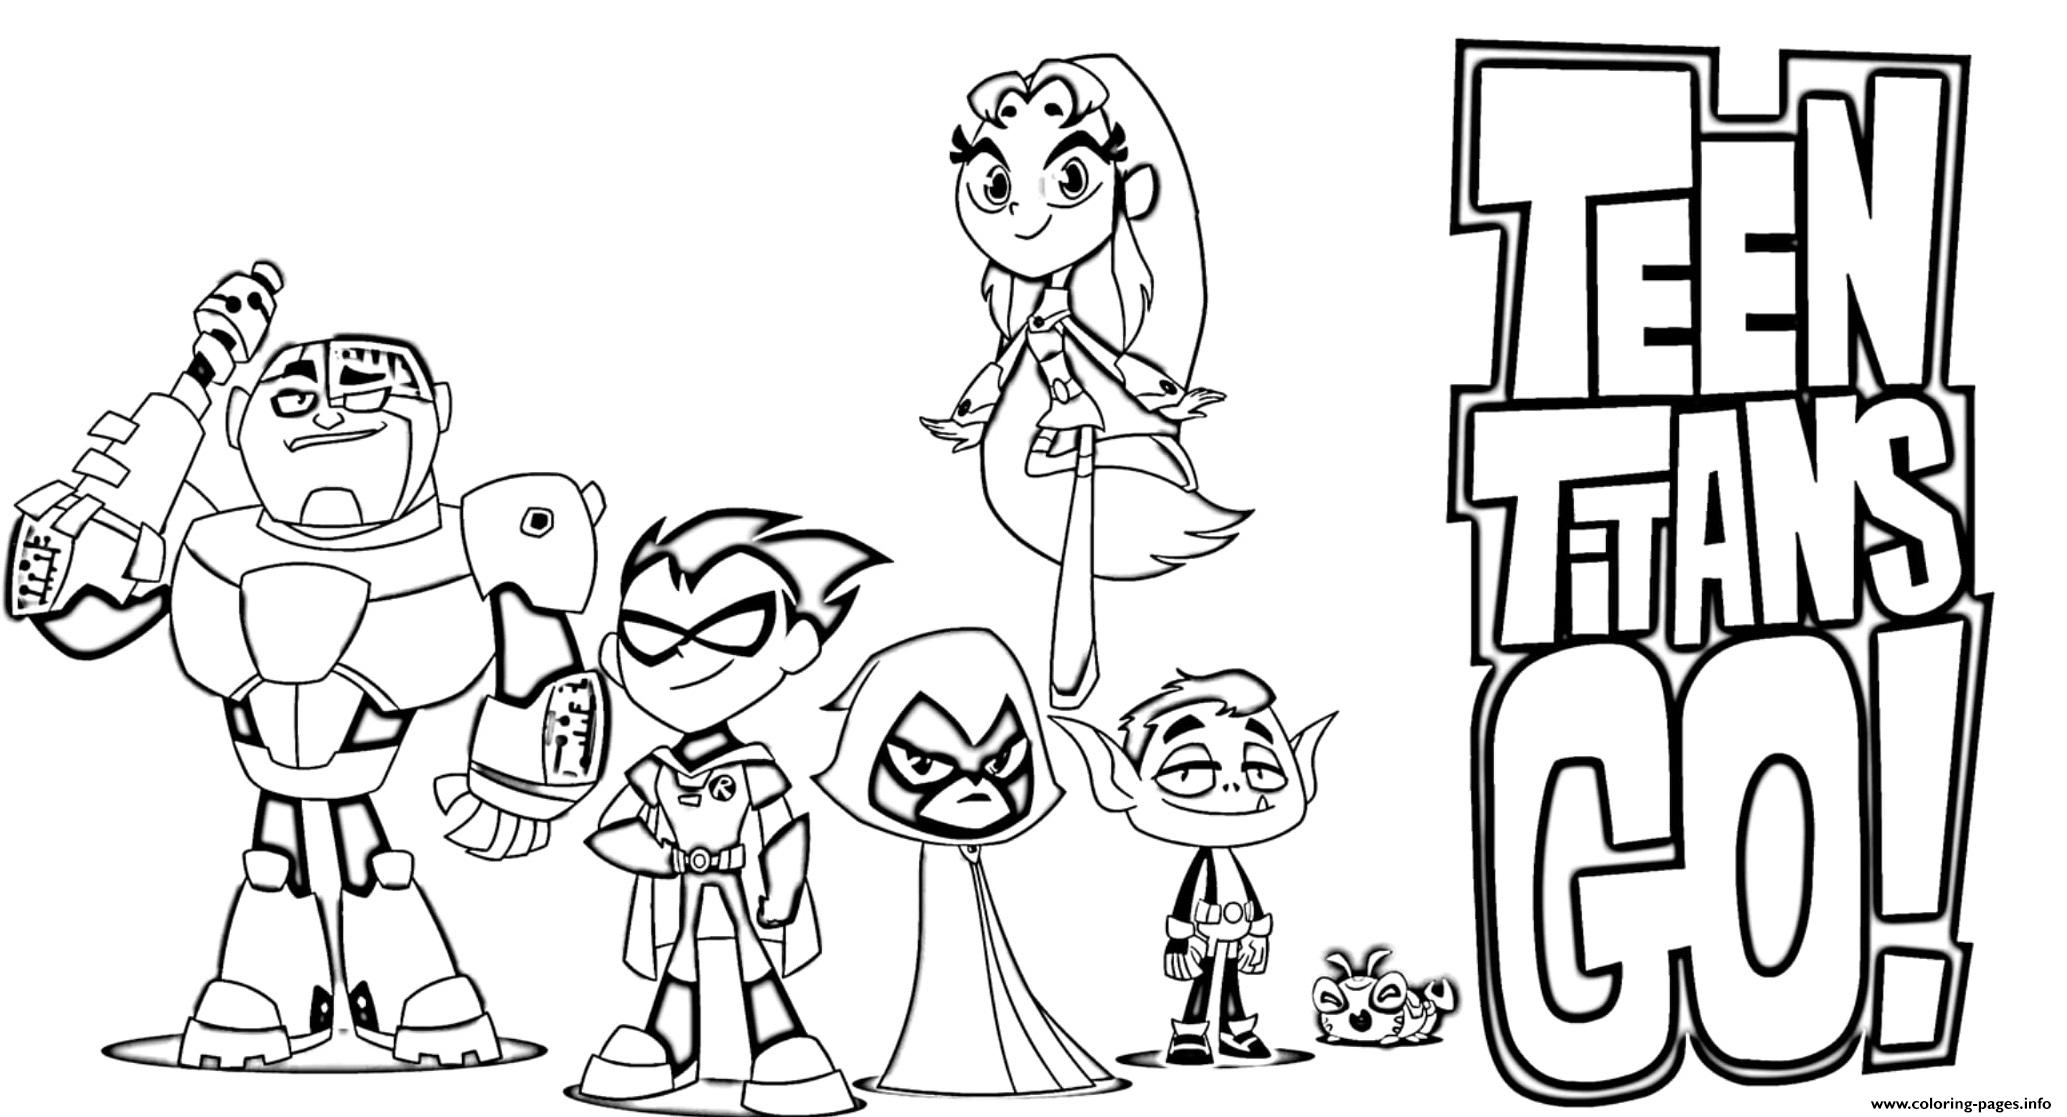 teen titans go color pages team titans coloring pages at getdrawings free download titans color pages go teen